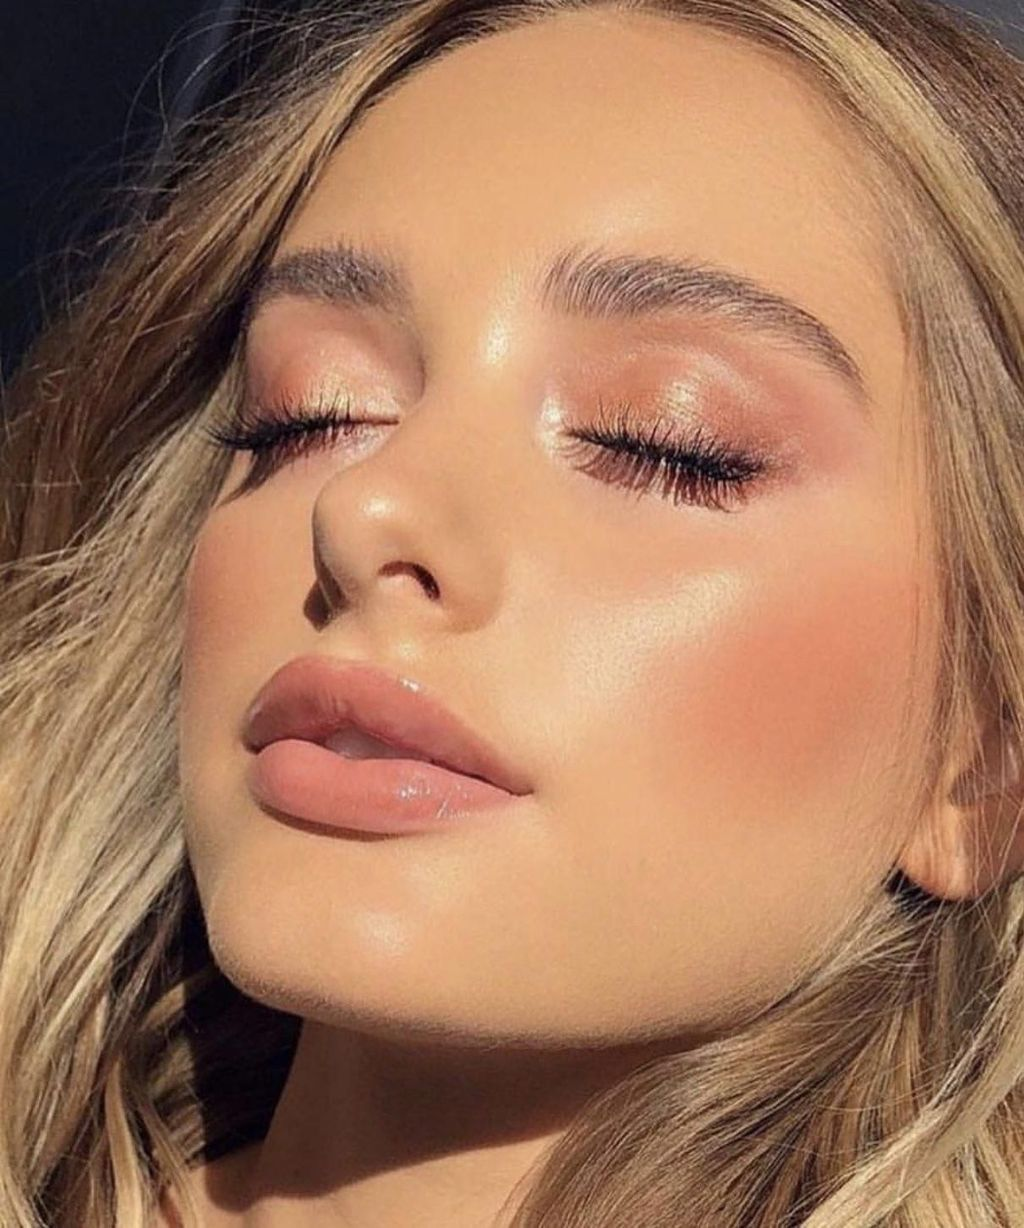 42 Magnificient Makeup Ideas For Beginner To Try This Year -   - #Beginner #Ideas #Magnificient #Makeup #Year